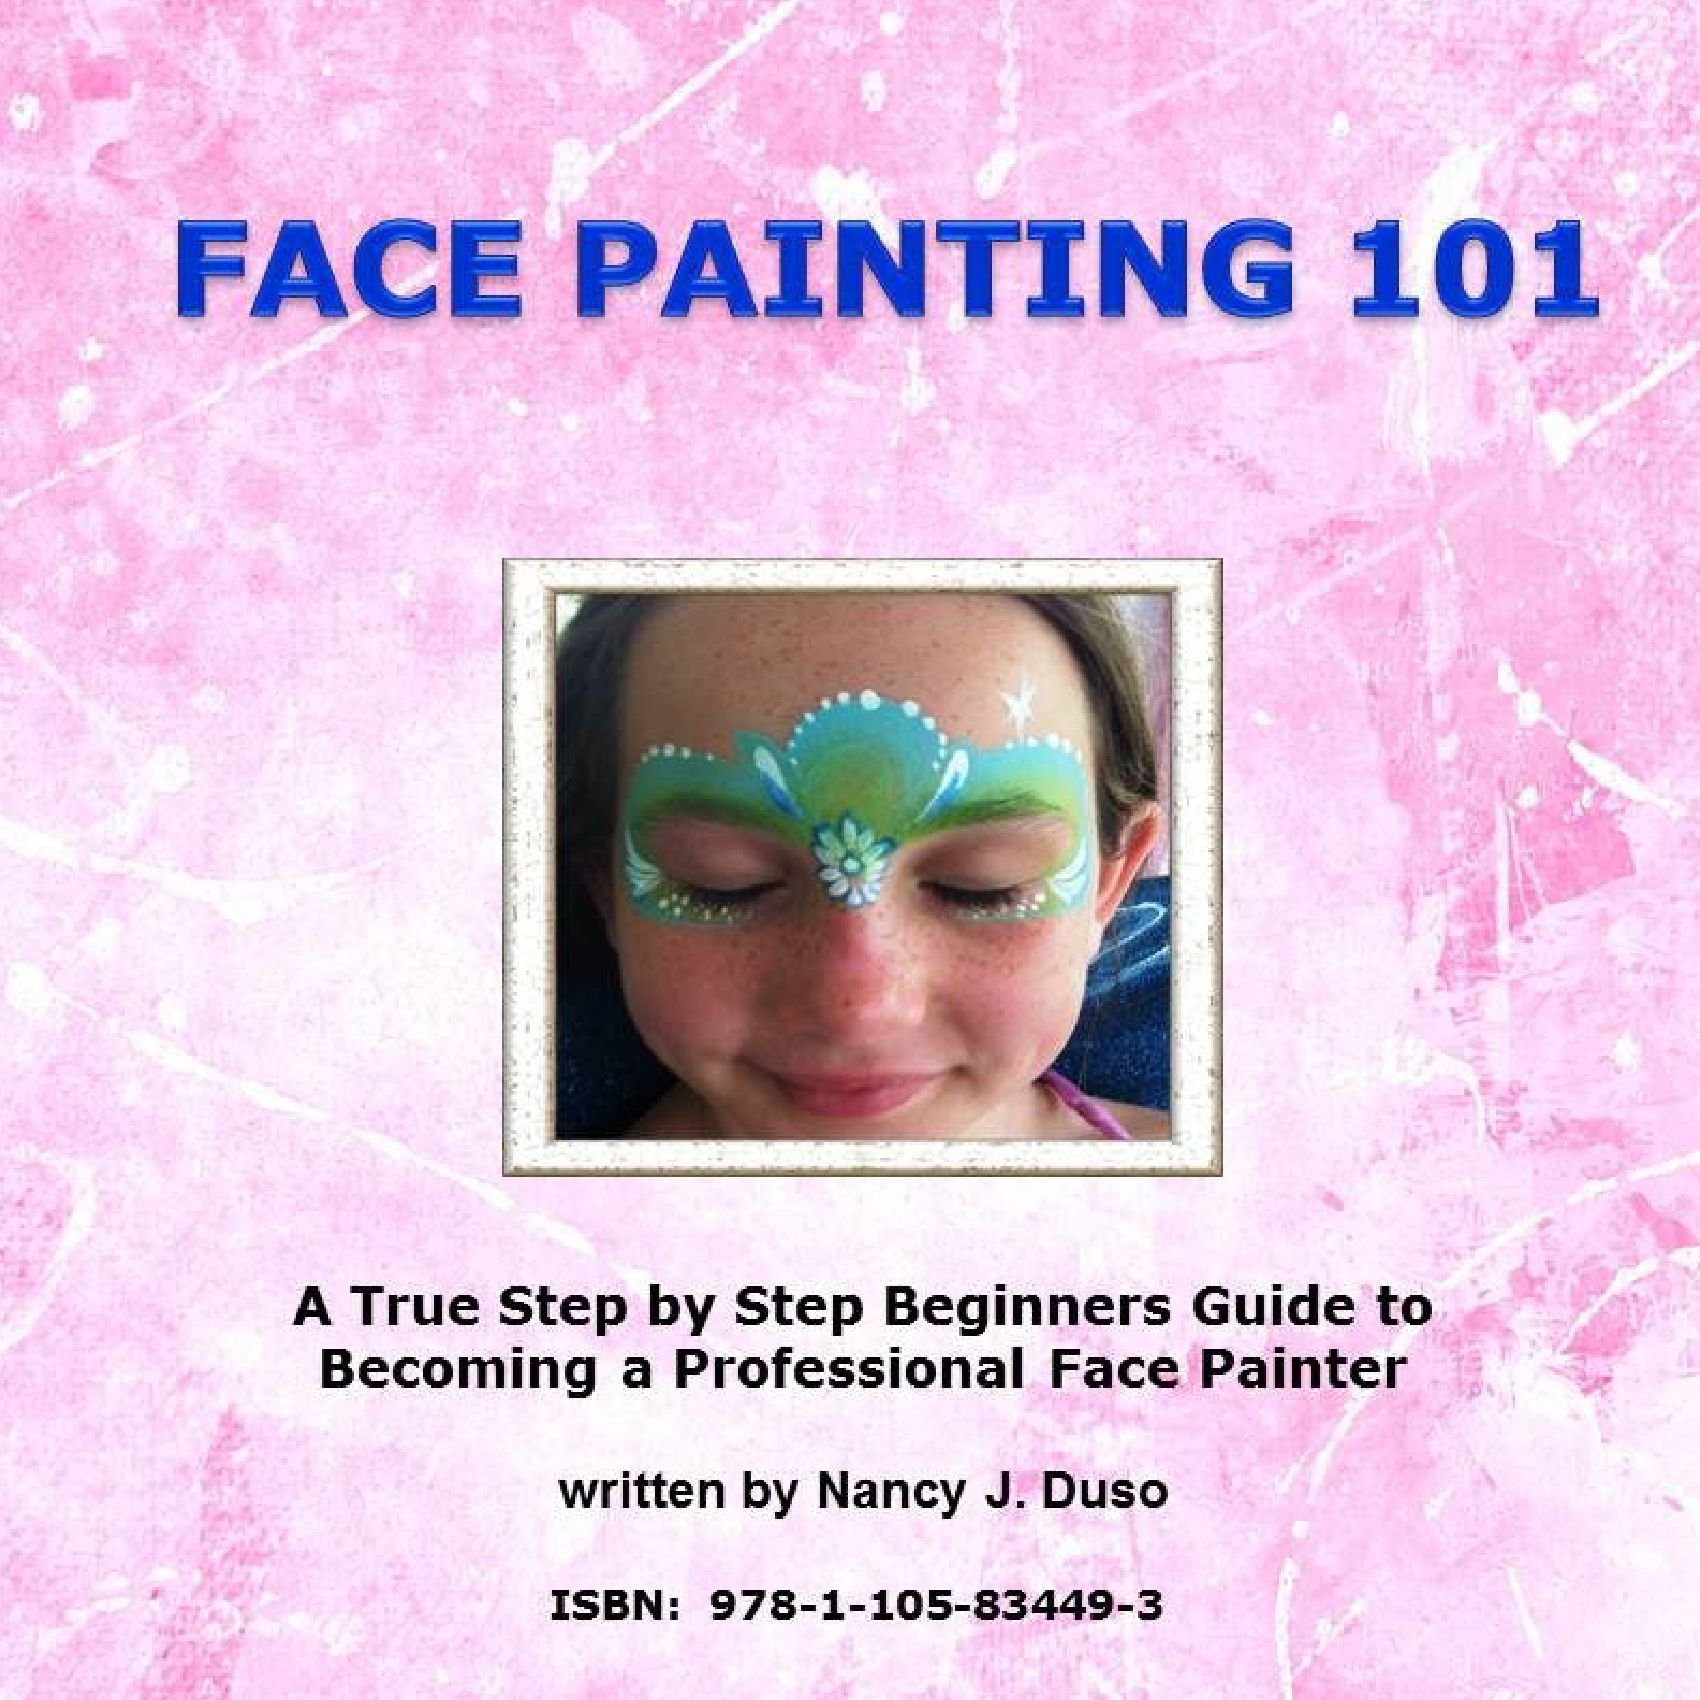 Face Painting 101 A True Step By Step Beginners Guide To Becoming